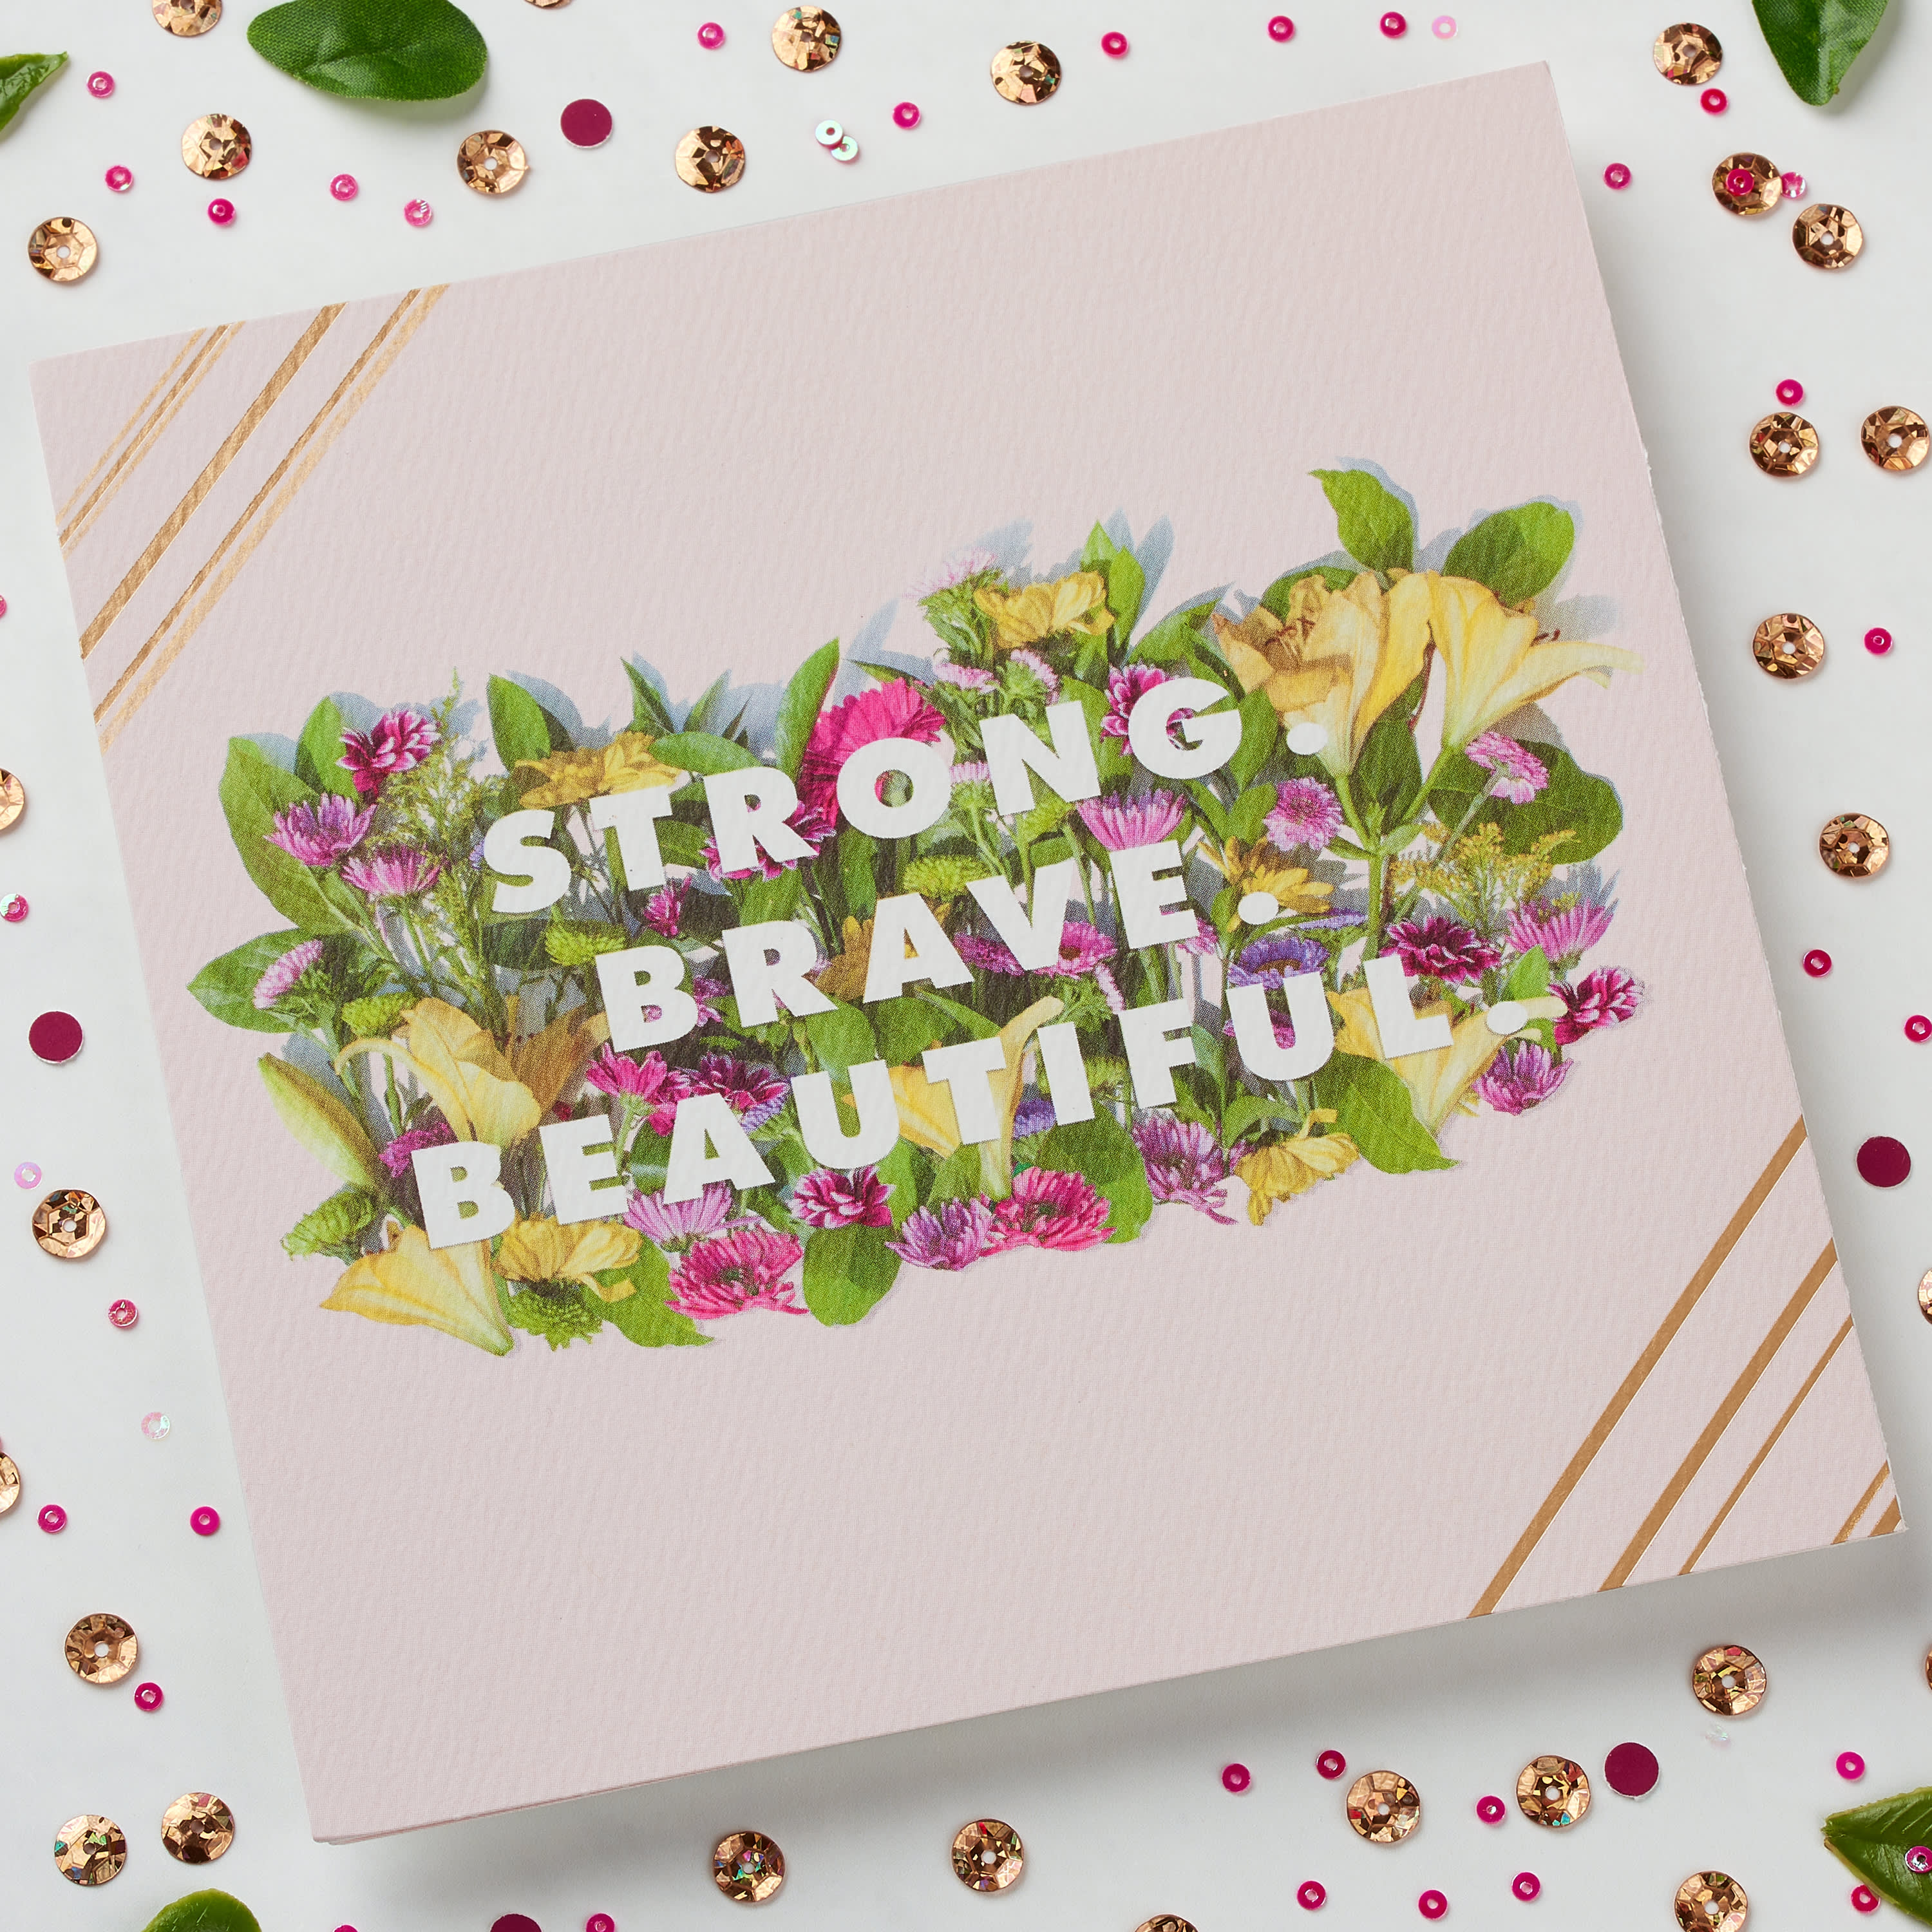 Strong Brave Beautiful Mother's Day Card image